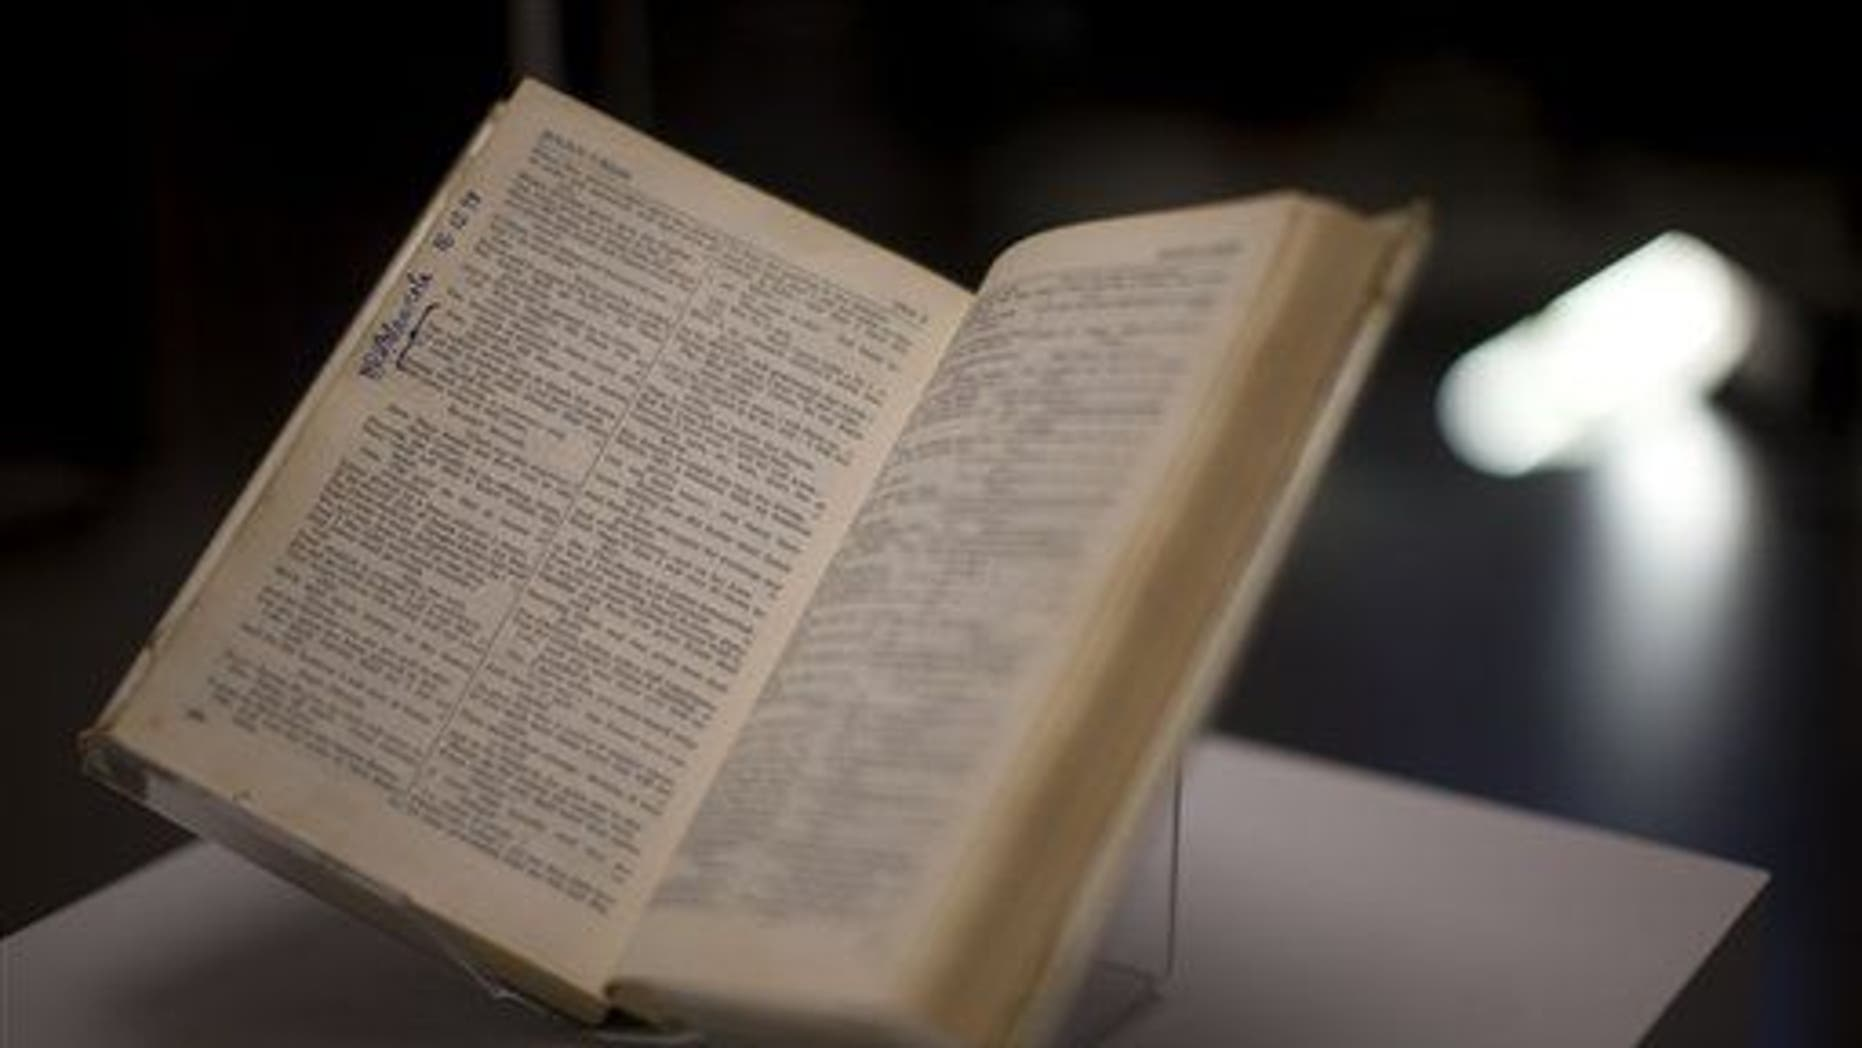 """A copy of the """"Complete Works of Shakespeare"""" is displayed during the press view of the """"Shakespeare: staging the world"""" exhibition at the British Museum in London, Wednesday, July 18, 2012."""